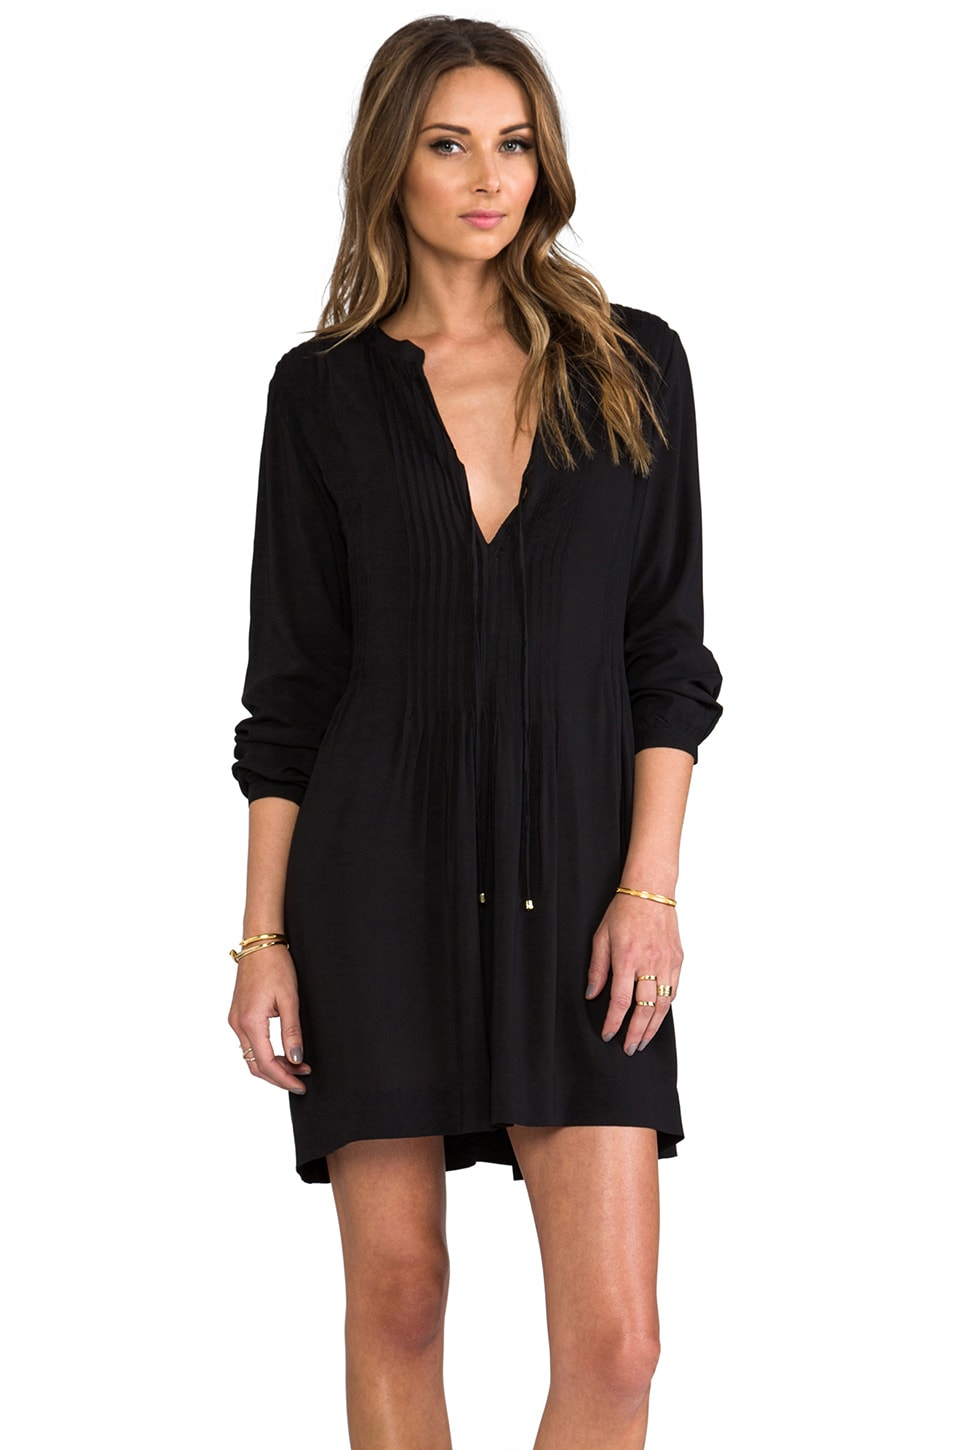 Vix Swimwear Catarina Tunic in Solid Black